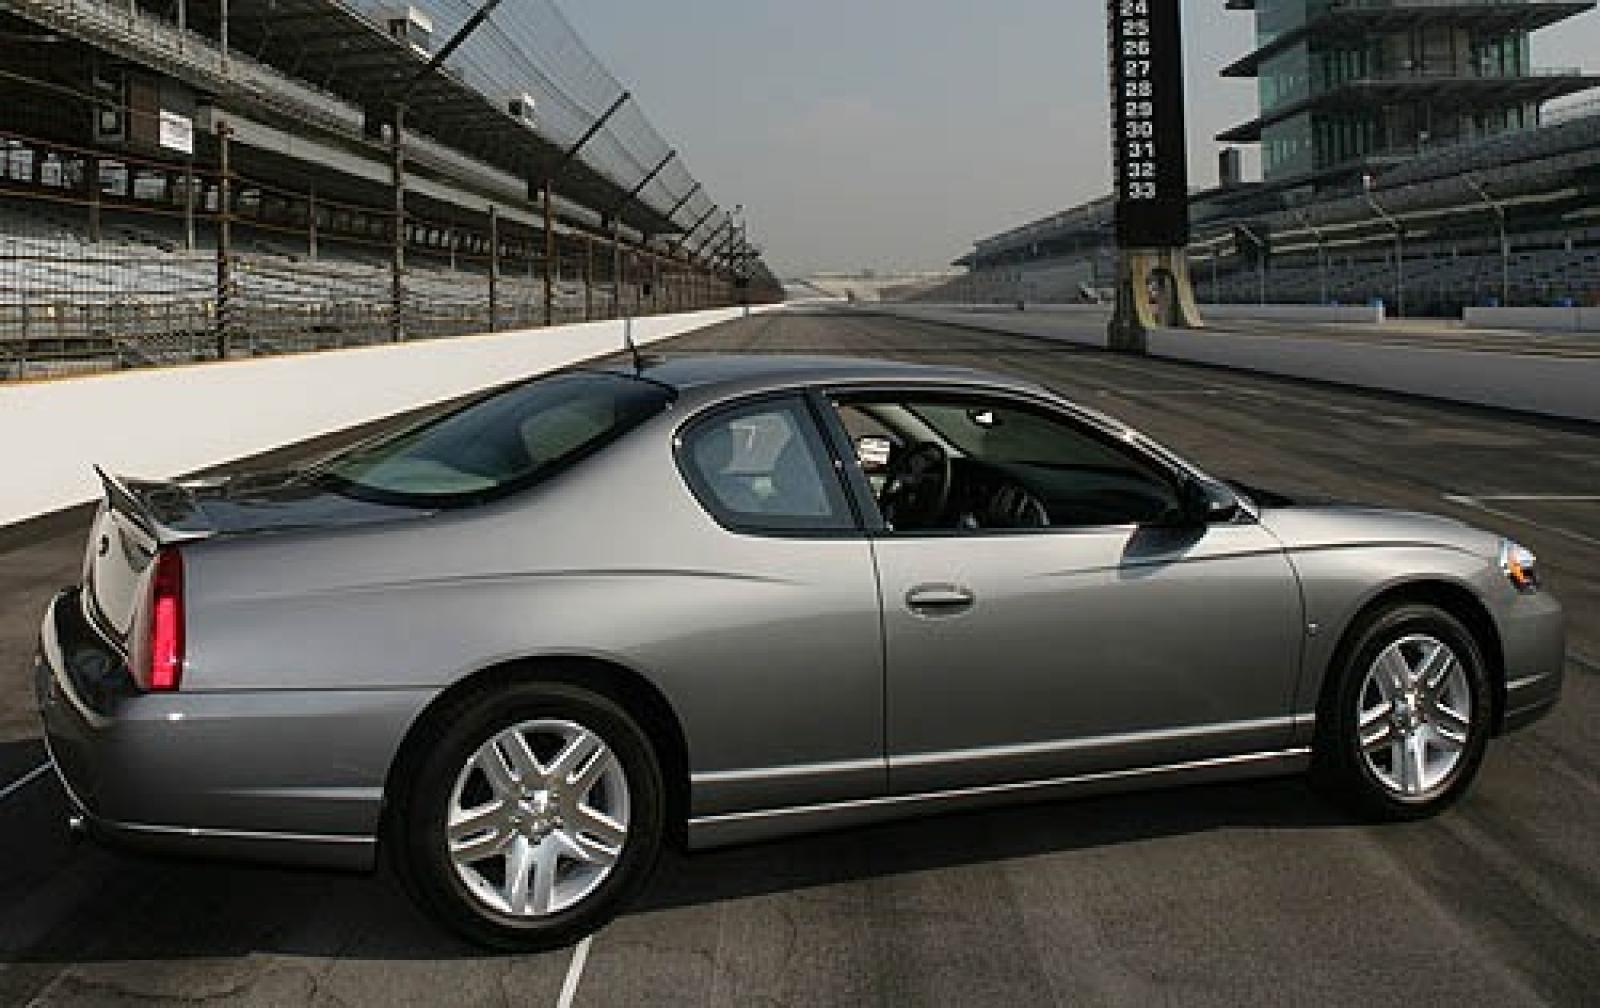 2006 chevrolet monte carlo information and photos zombiedrive. Black Bedroom Furniture Sets. Home Design Ideas